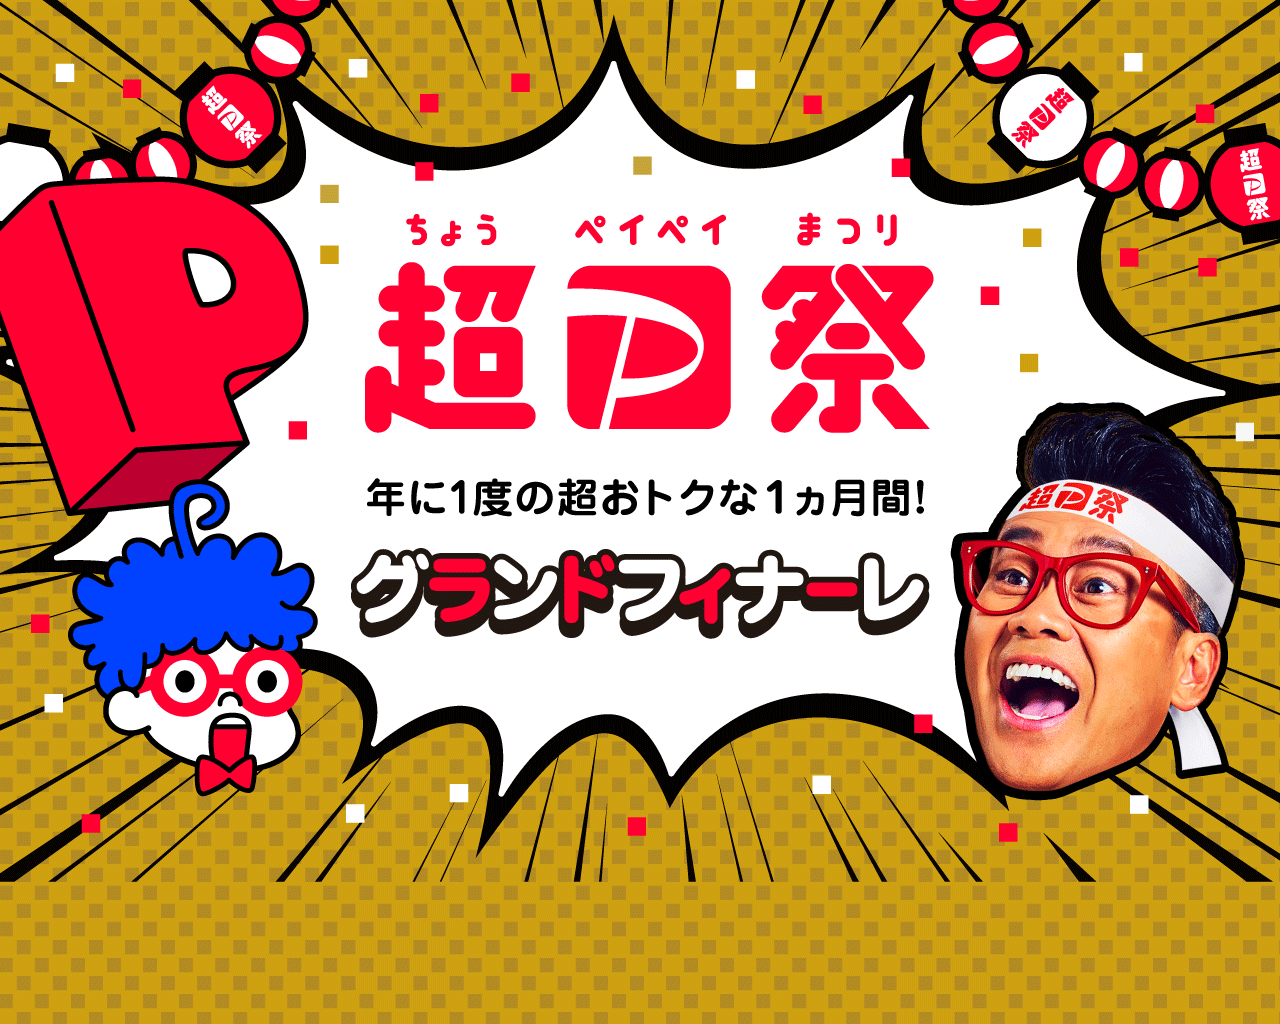 https://image.paypay.ne.jp/page/event/paypay-matsuri/images/img_mv_04.png